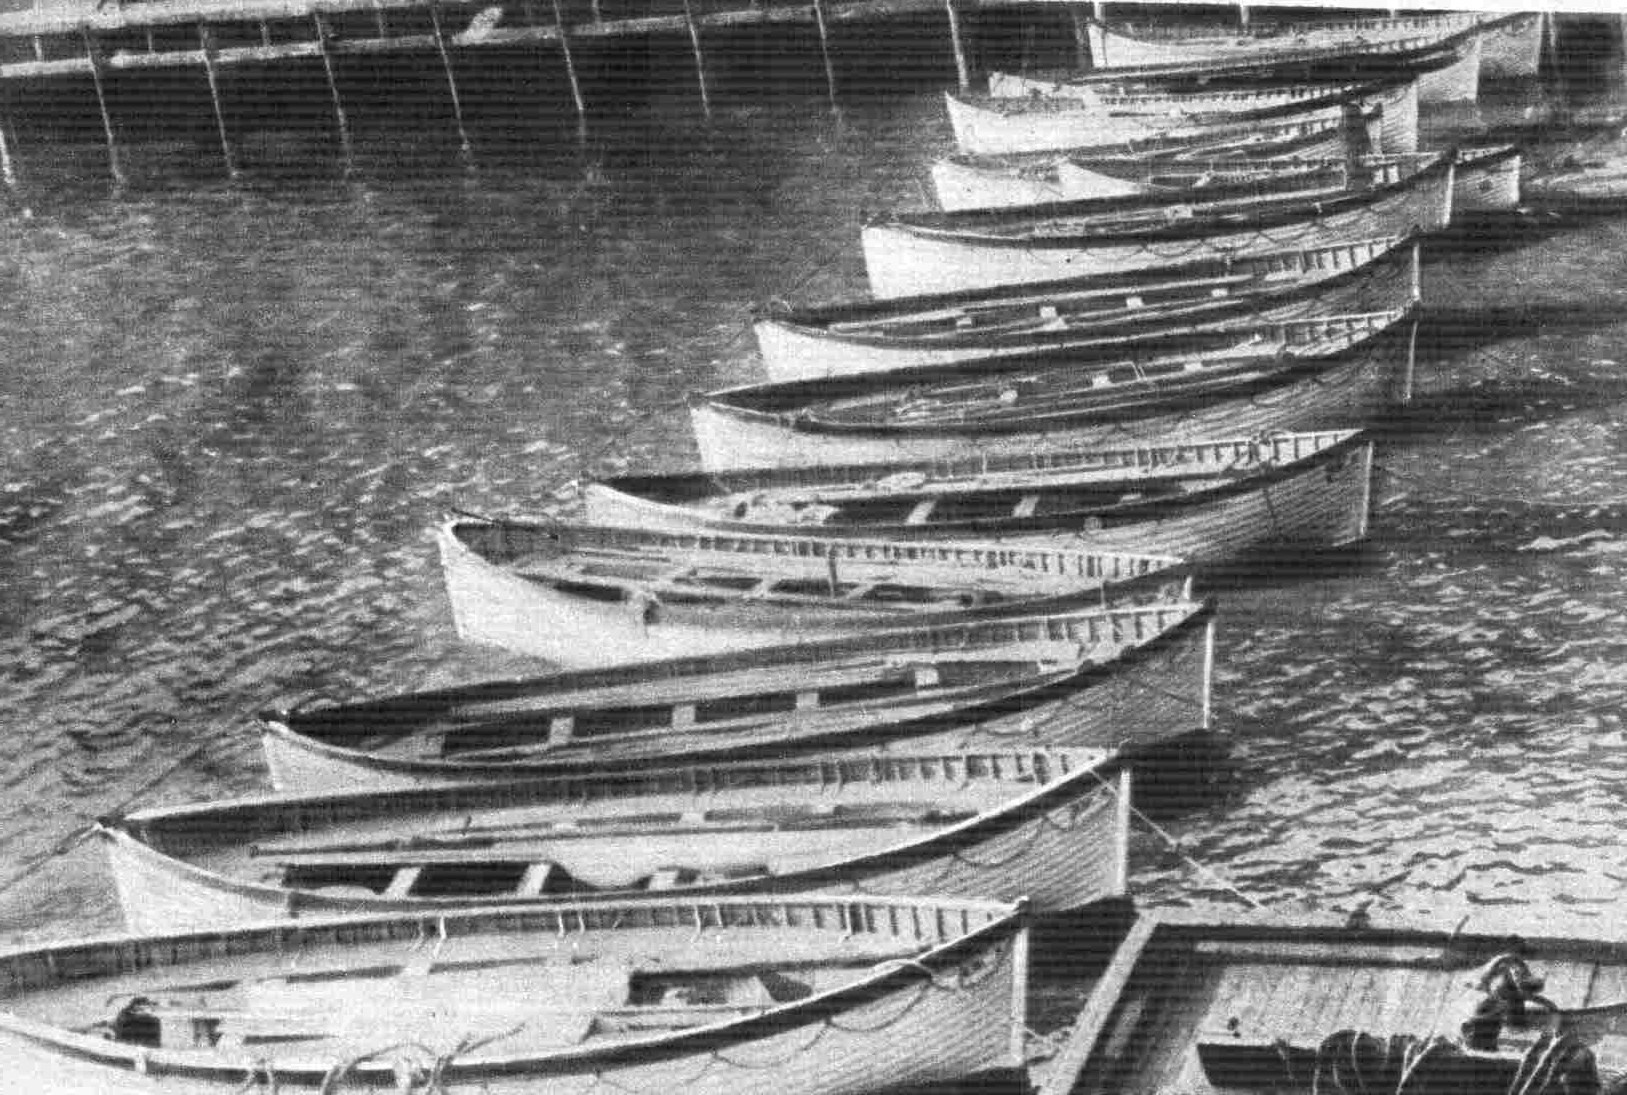 Titanic lifeboats that have been recovered.